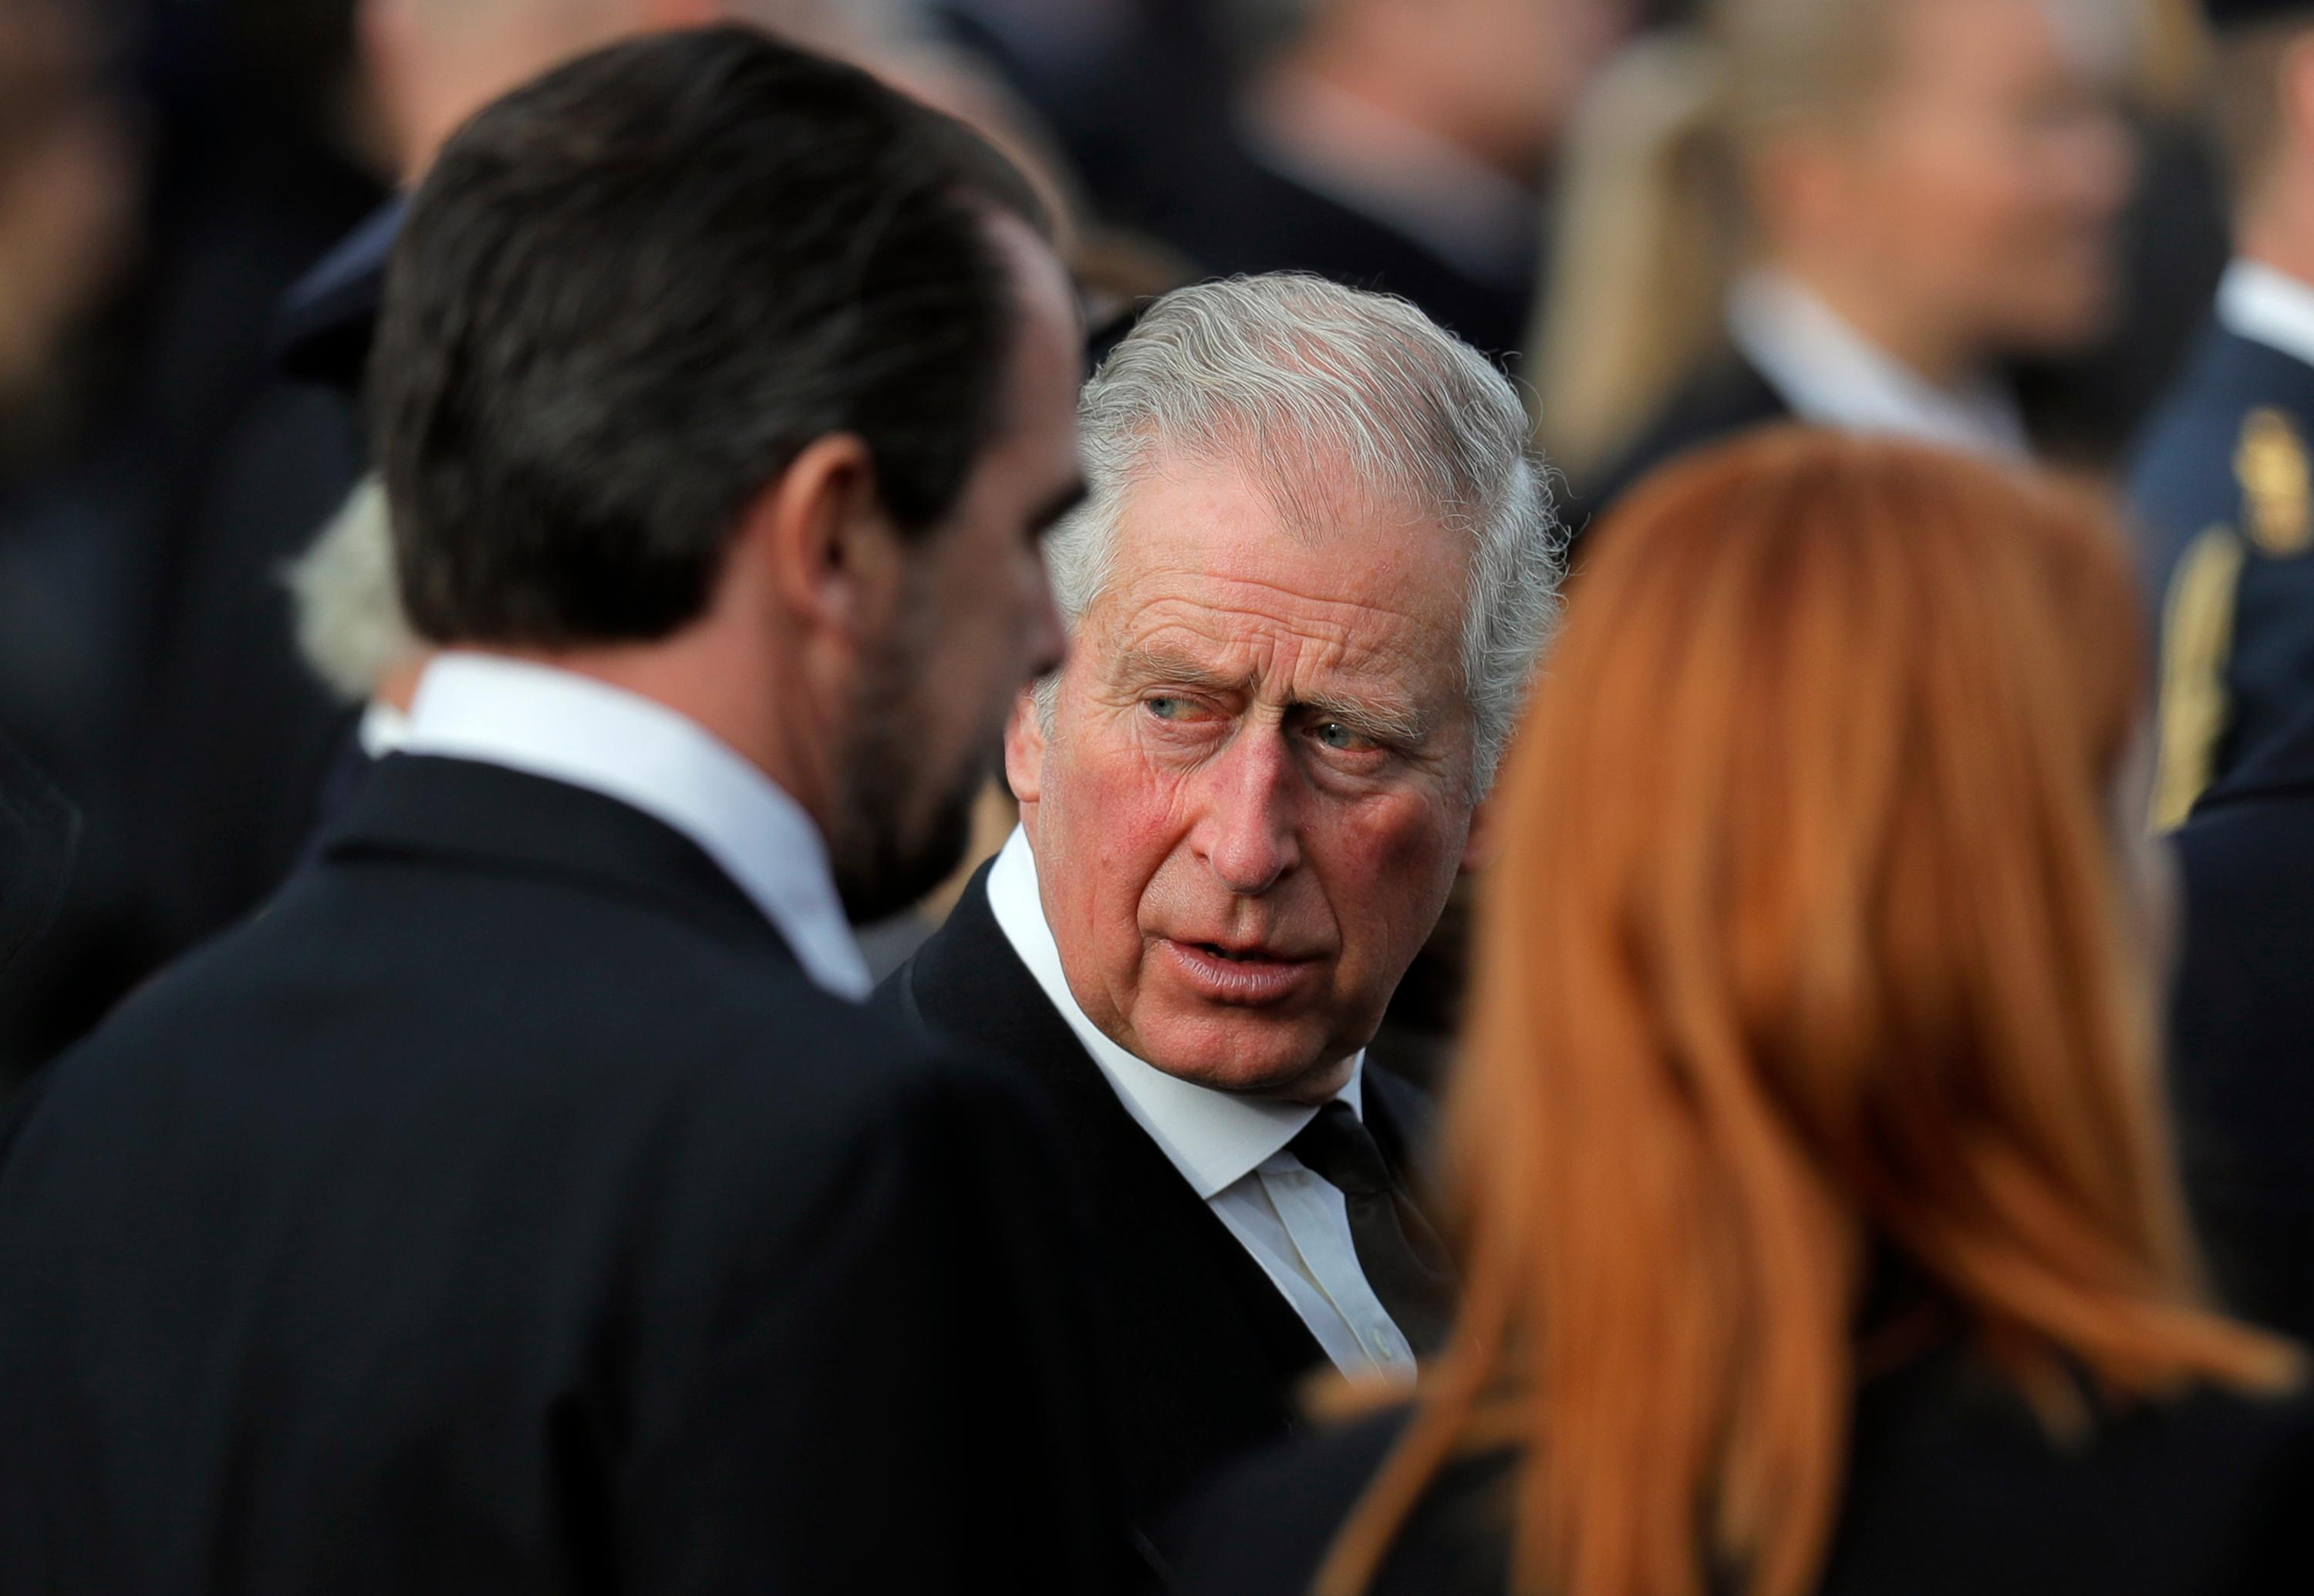 Prince Charles of Britain, center, attends the funeral ceremony in tribute to late Romanian King Michael in Bucharest, Romania, Saturday, Dec.16, 2017. Thousands waited in line to pay their respects to Former King Michael, who ruled Romania during WWII, and died on Dec. 5, 2017, aged 96, in Switzerland. (AP Photo/Vadim Ghirda)